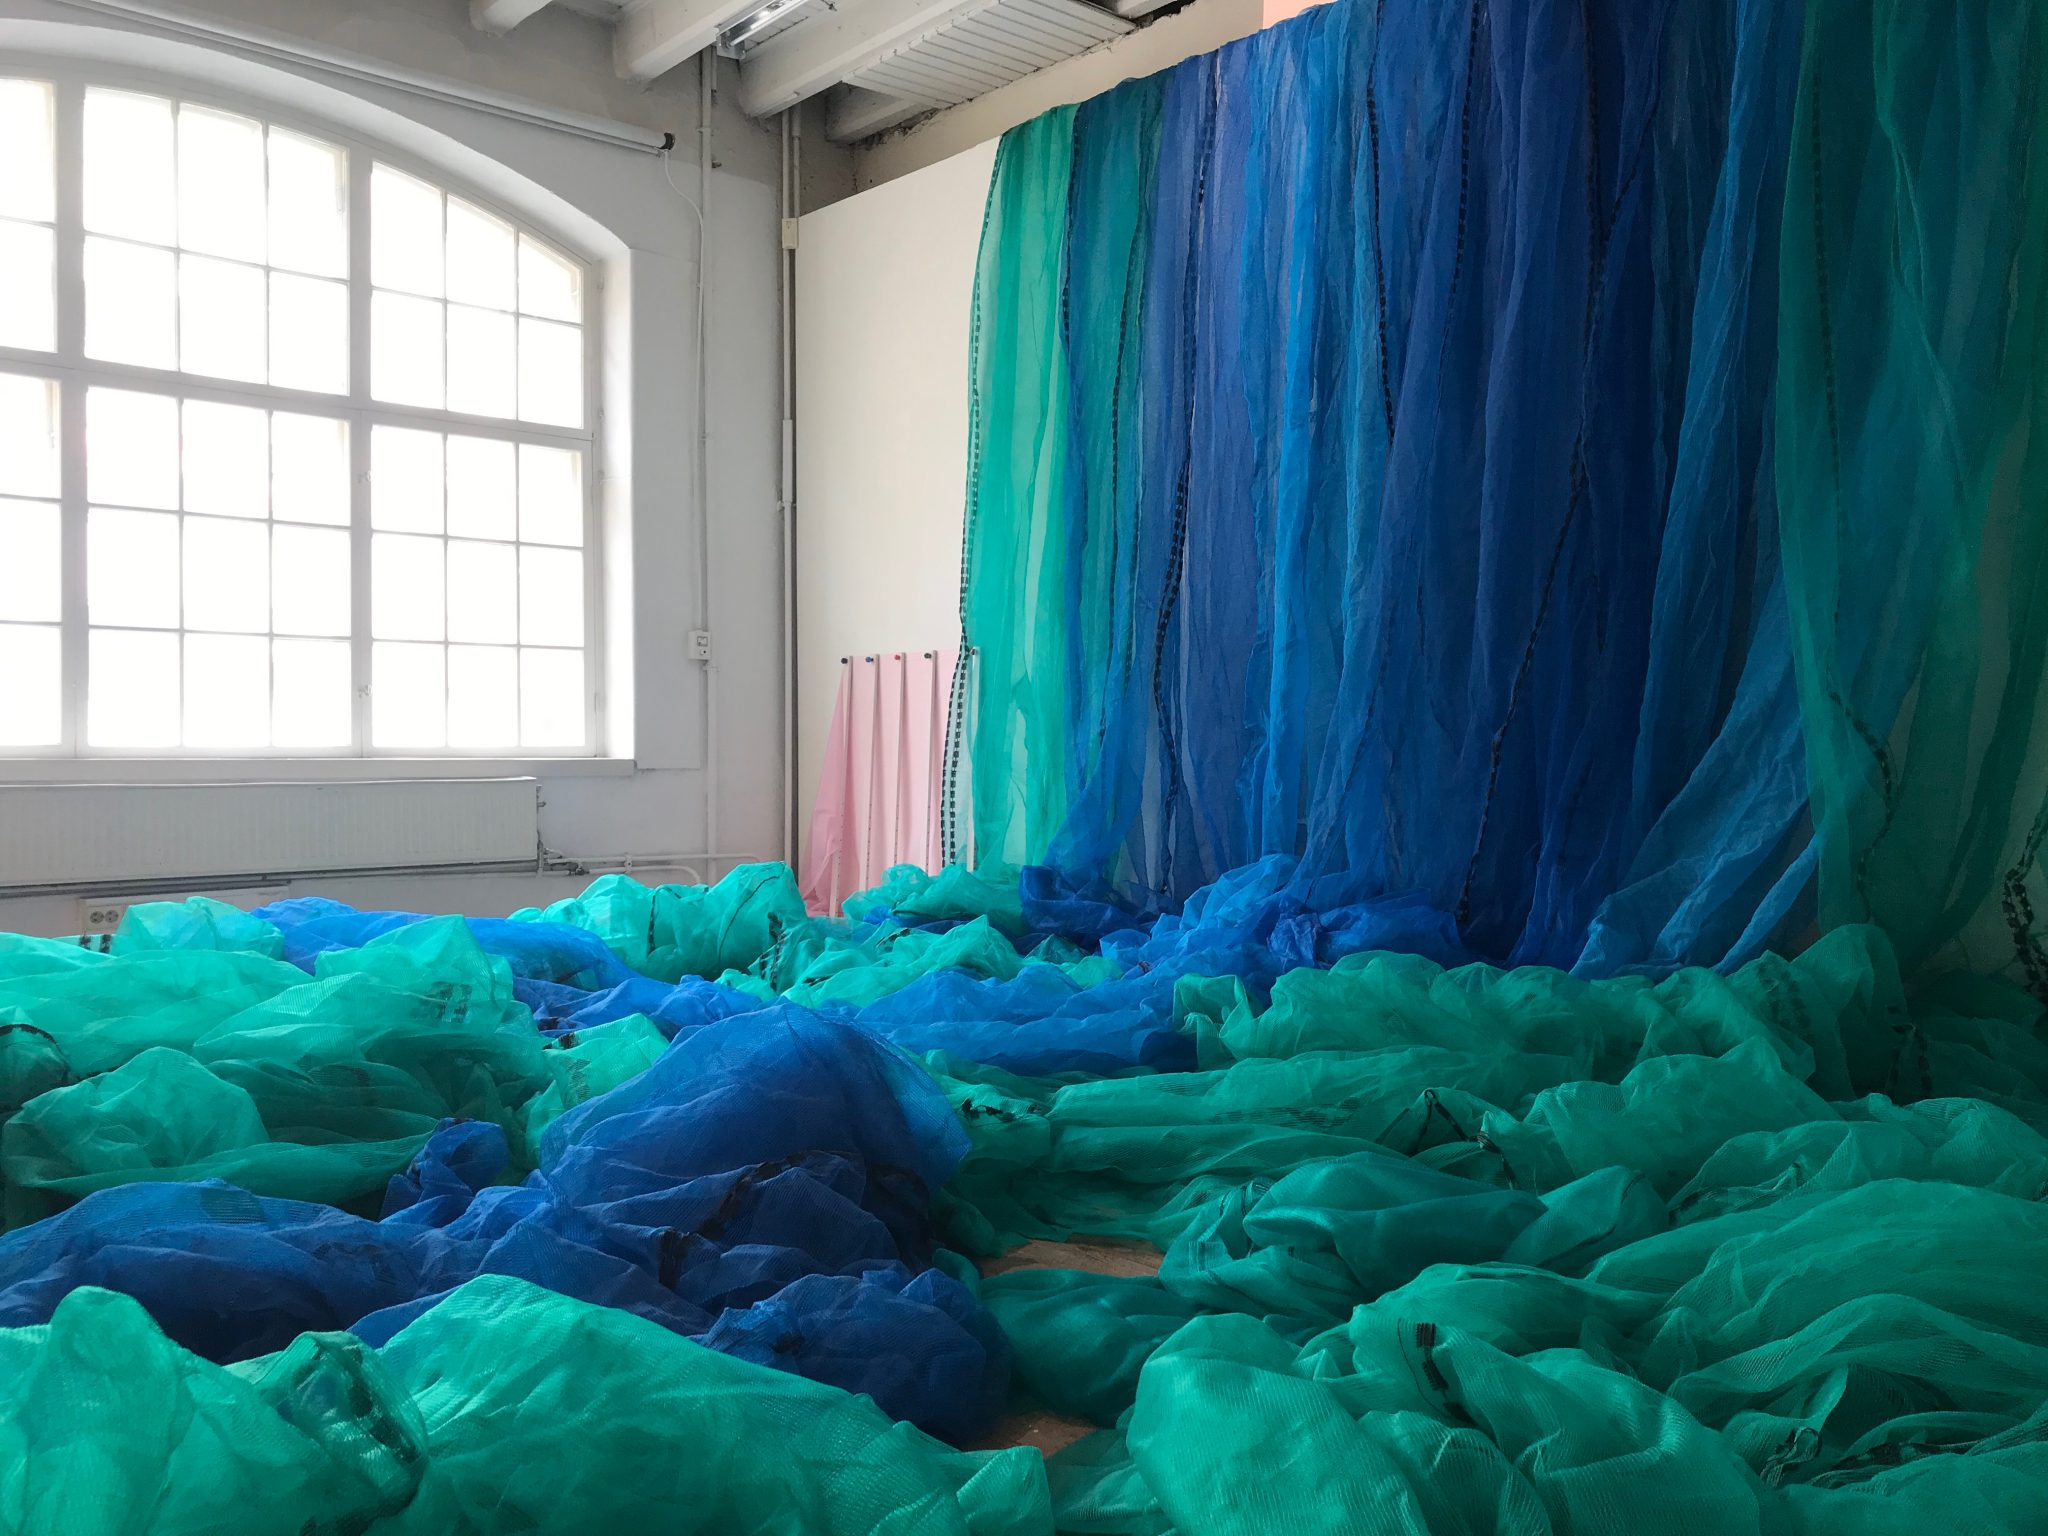 Andréa Hösel - Wall of Blues and Greens